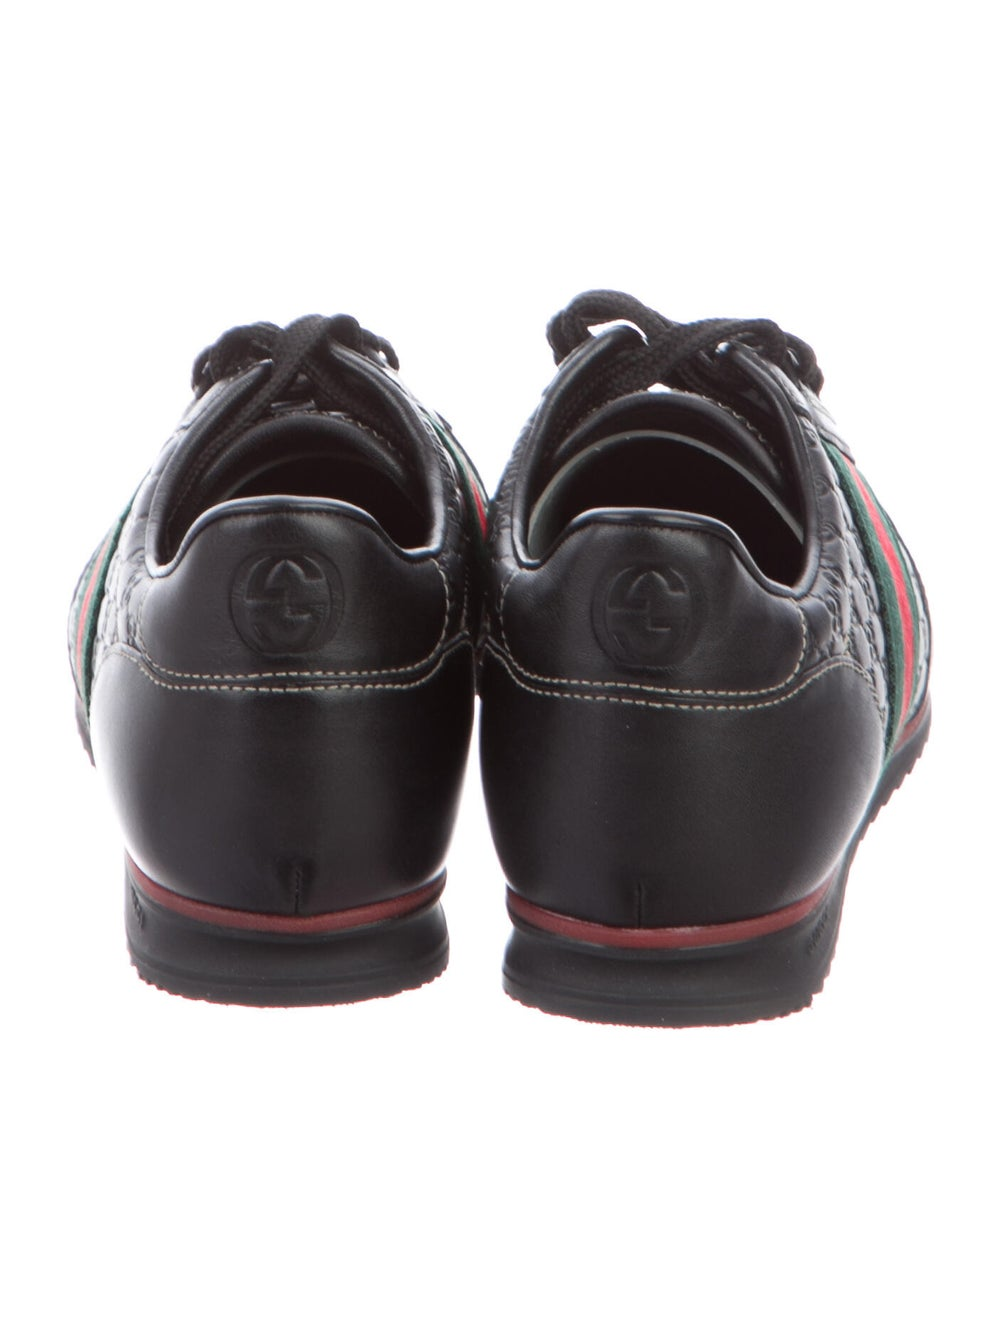 Gucci Web Accent Leather Sneakers Black - image 4